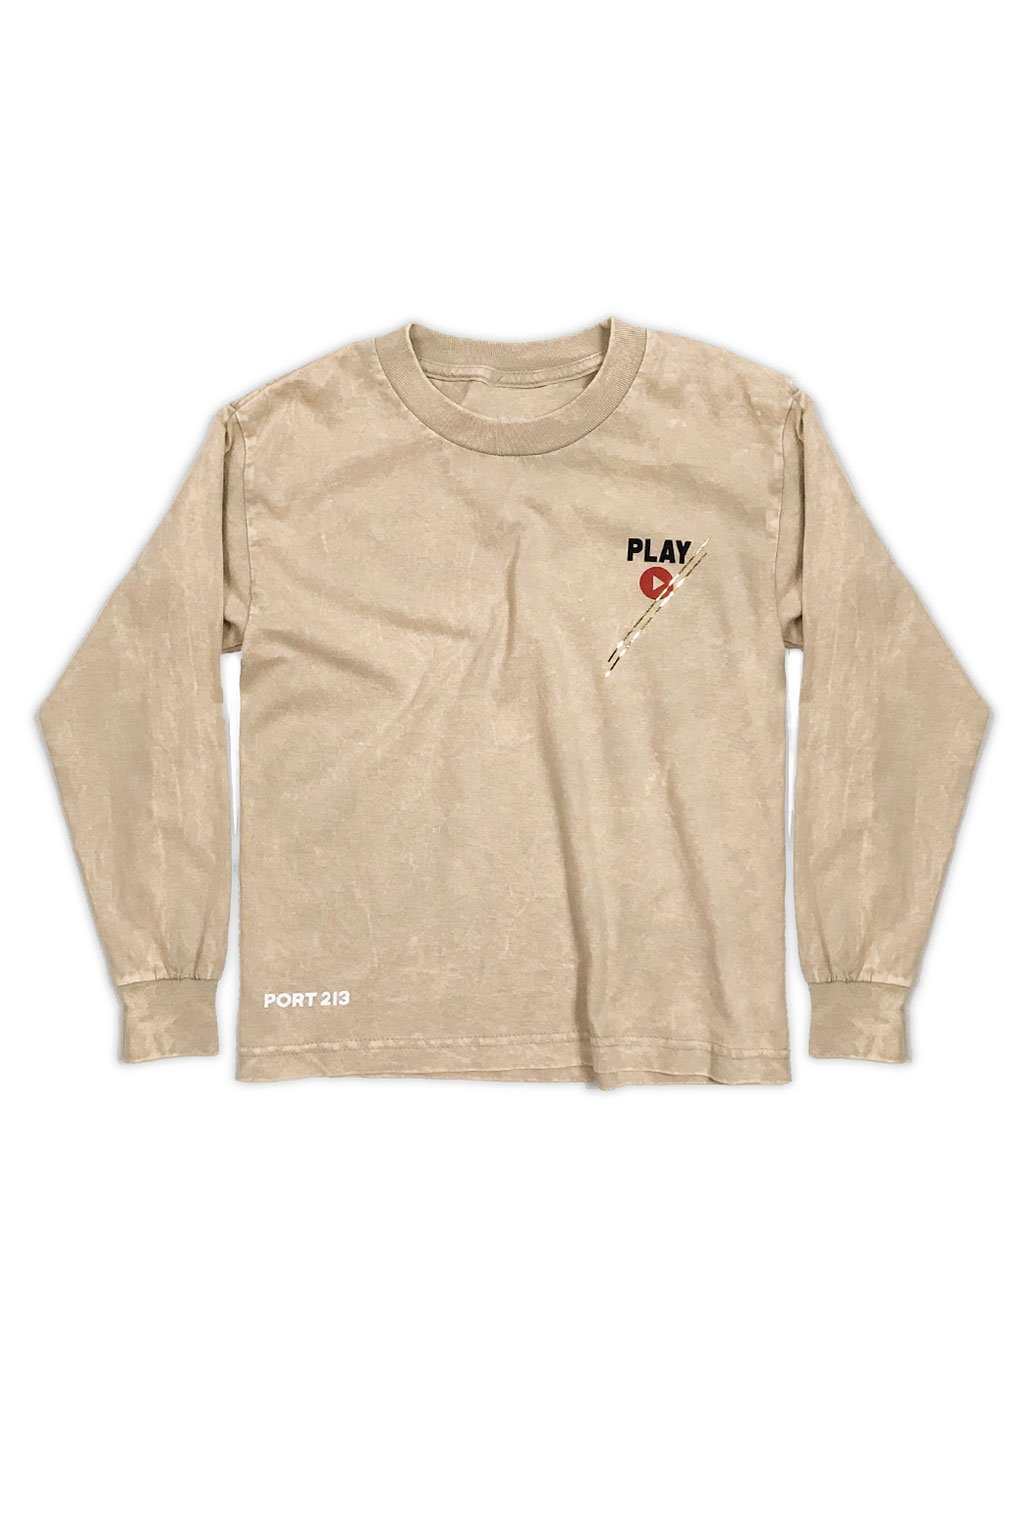 Vintage Beige Play Long Sleeve T-shirt - Port 213.com